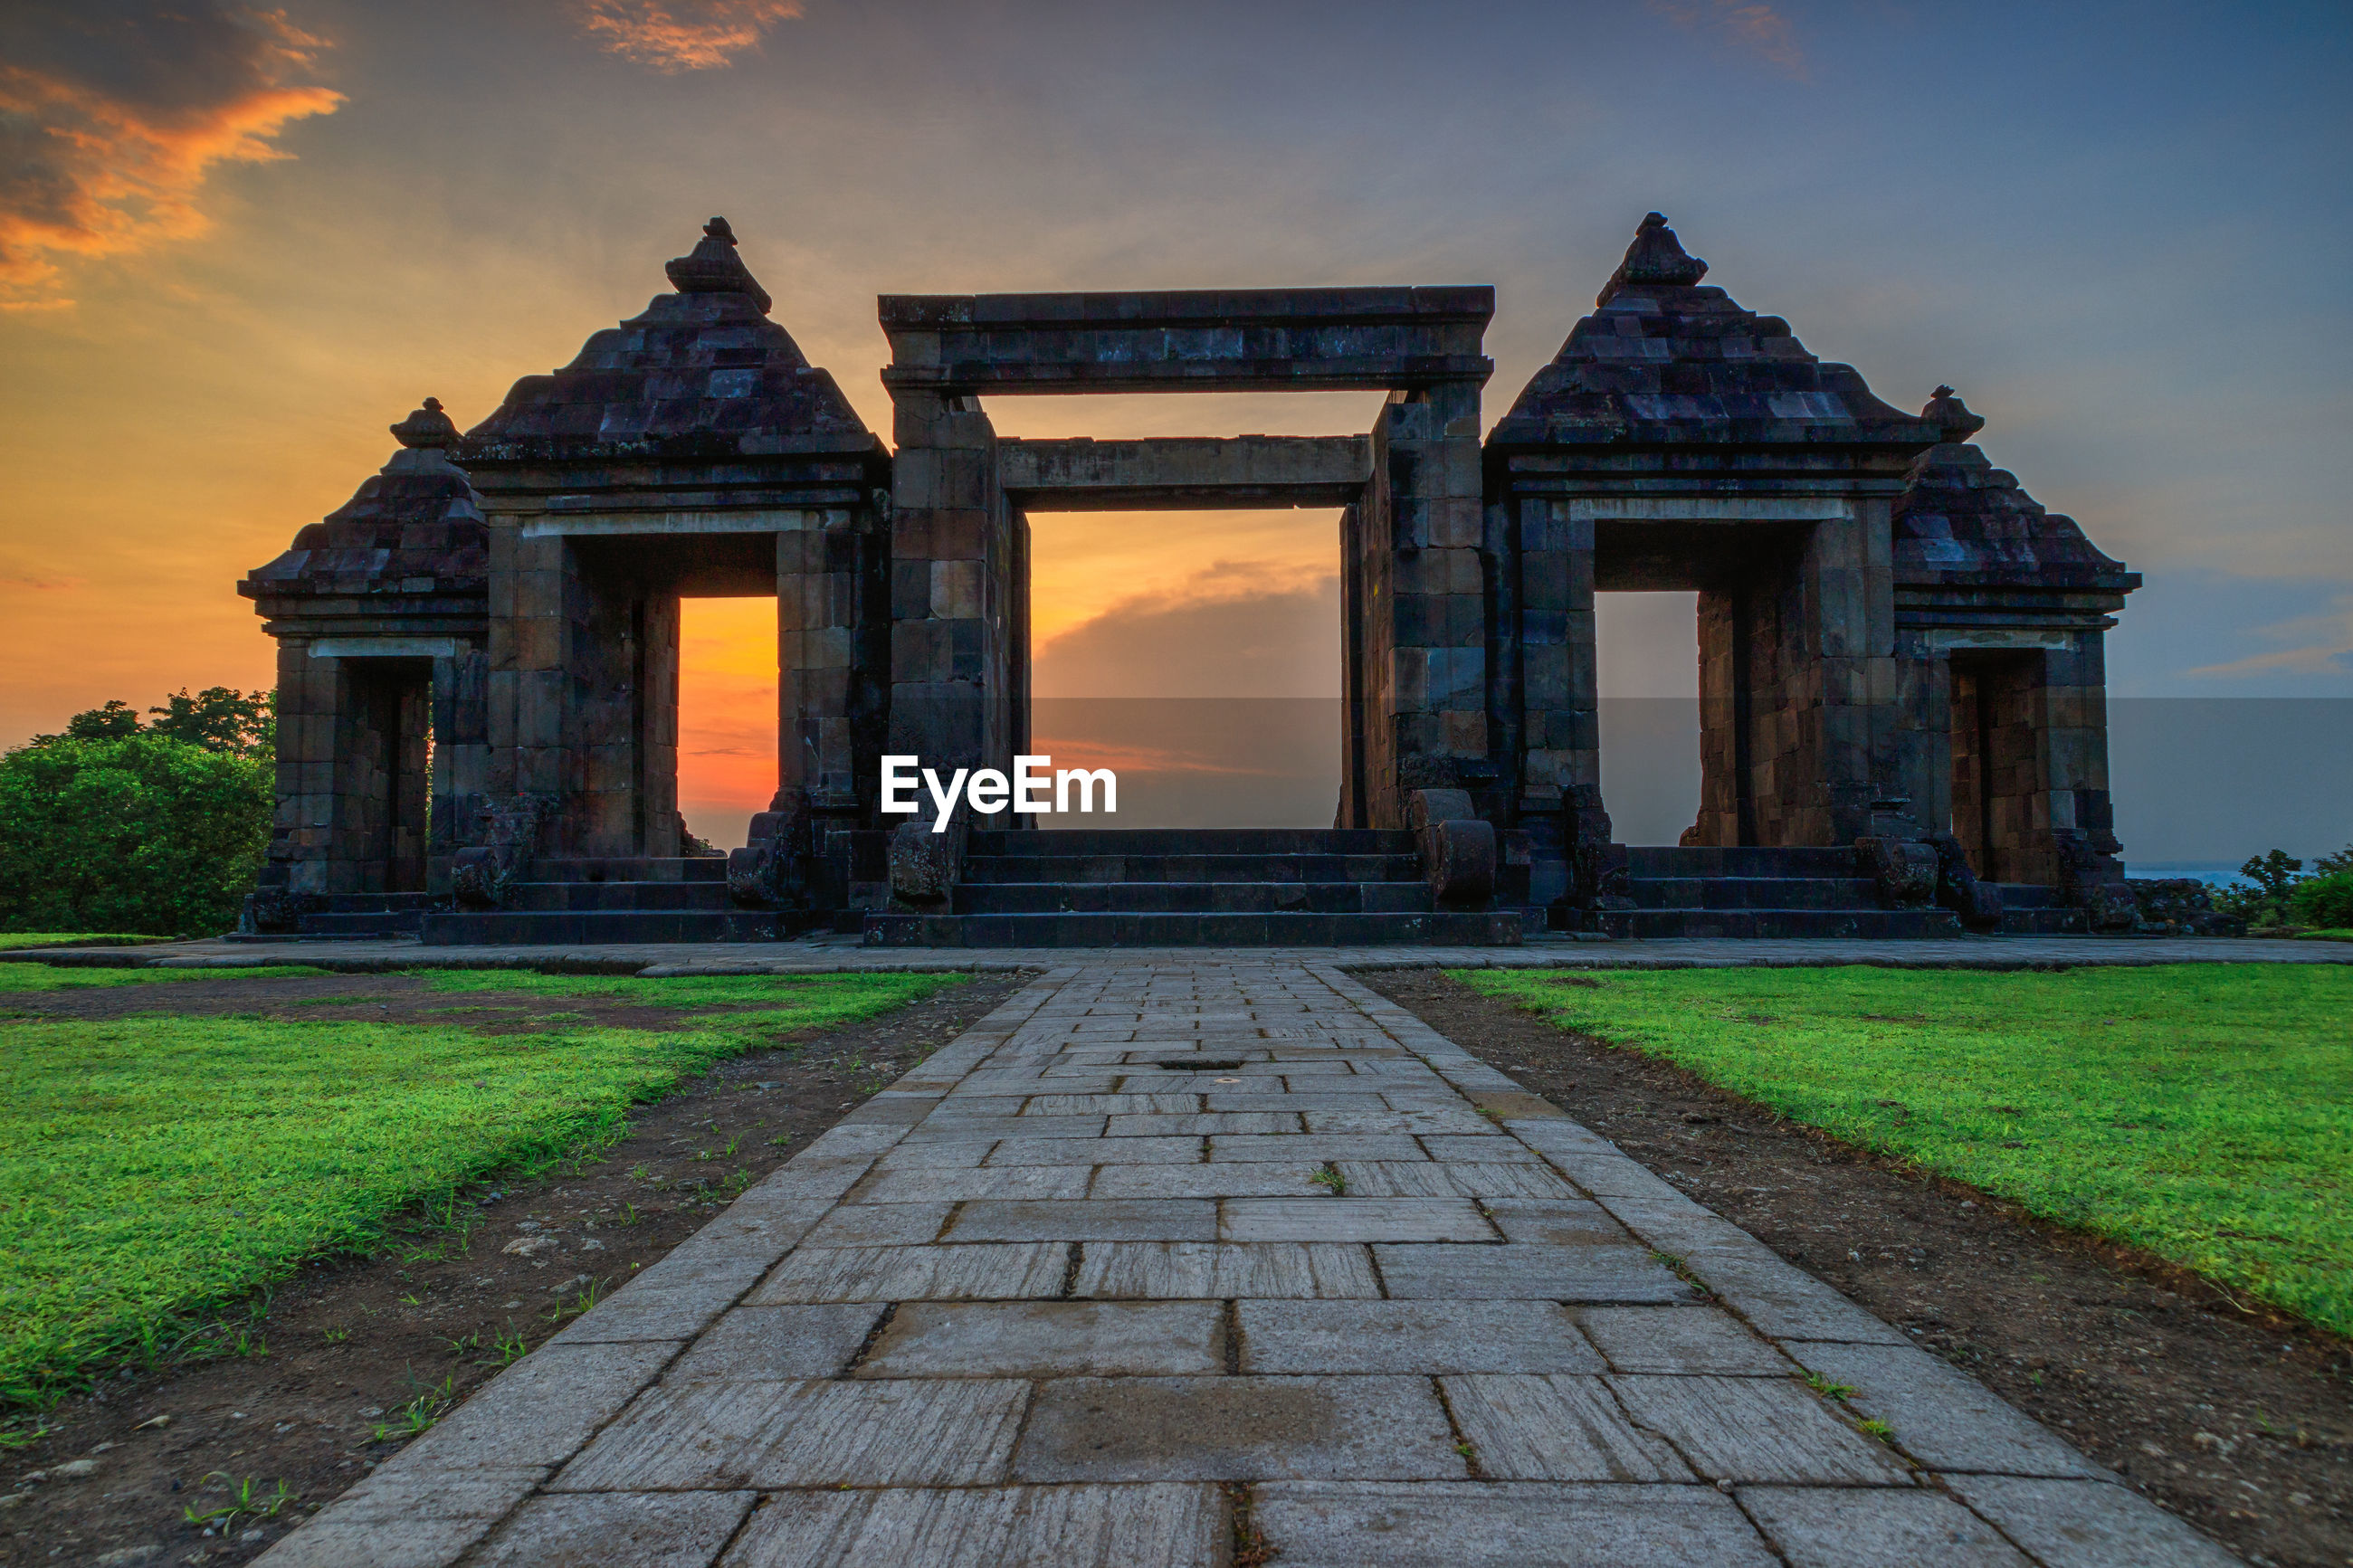 The main gate of ratu boko temple against sky during sunset